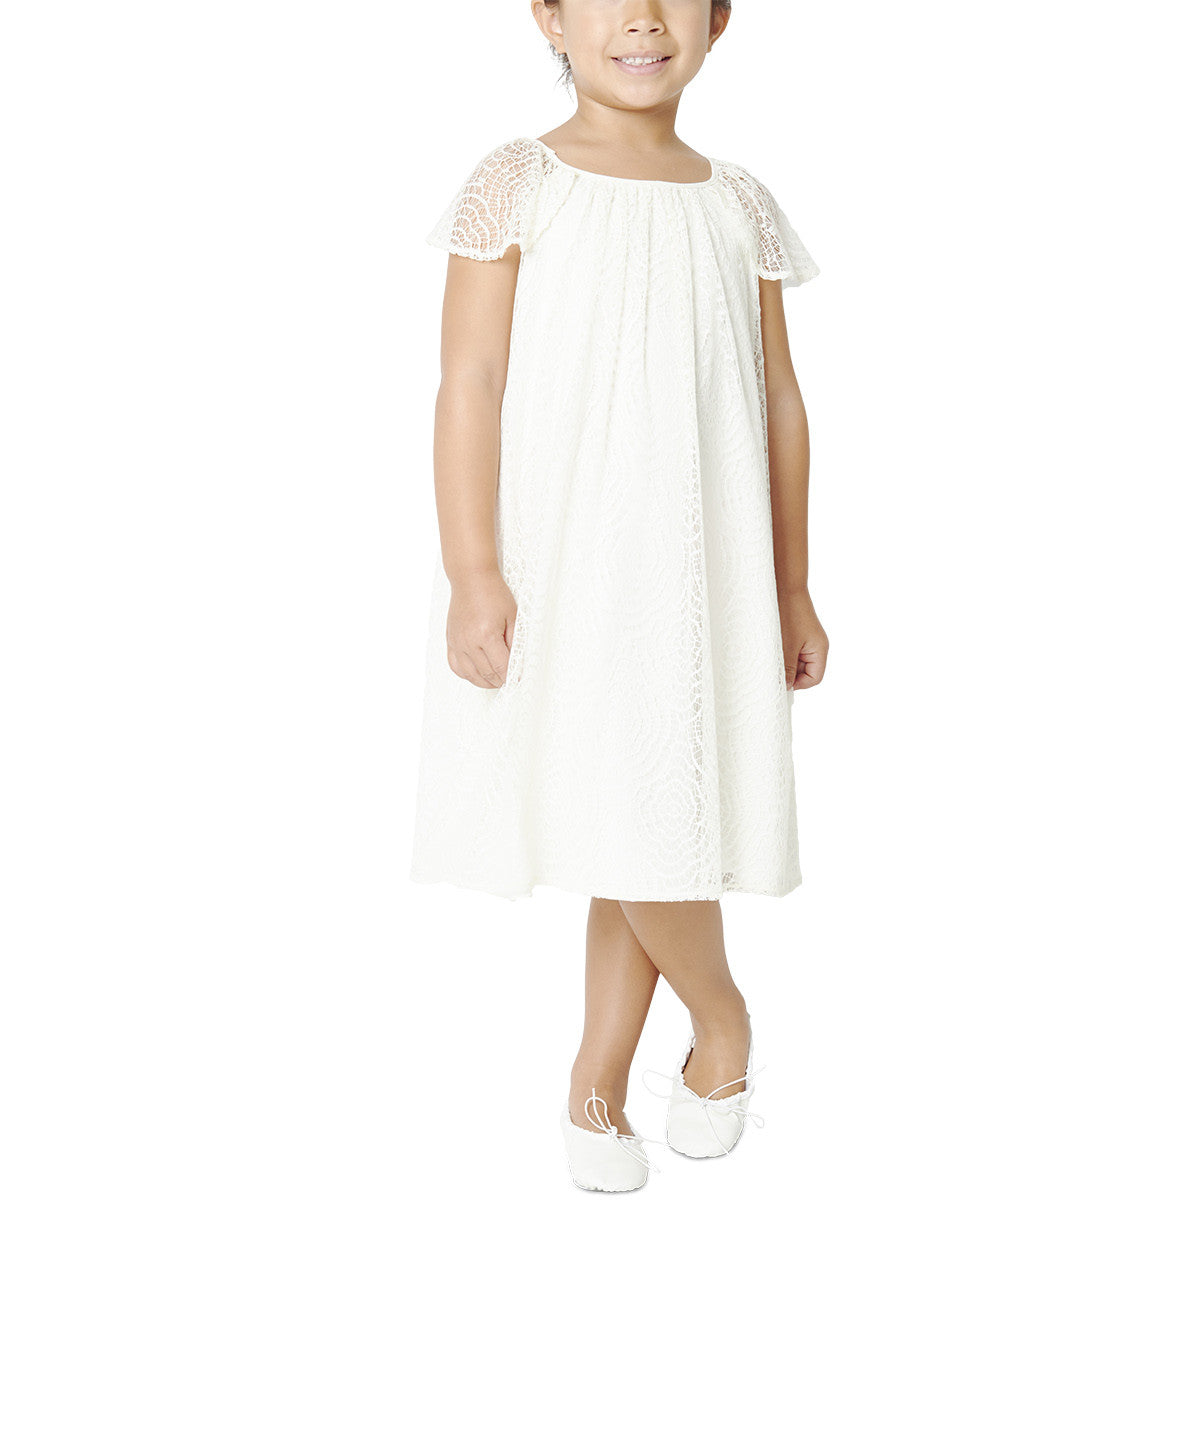 Joanna August Flower Girl Dress Anabel Lace